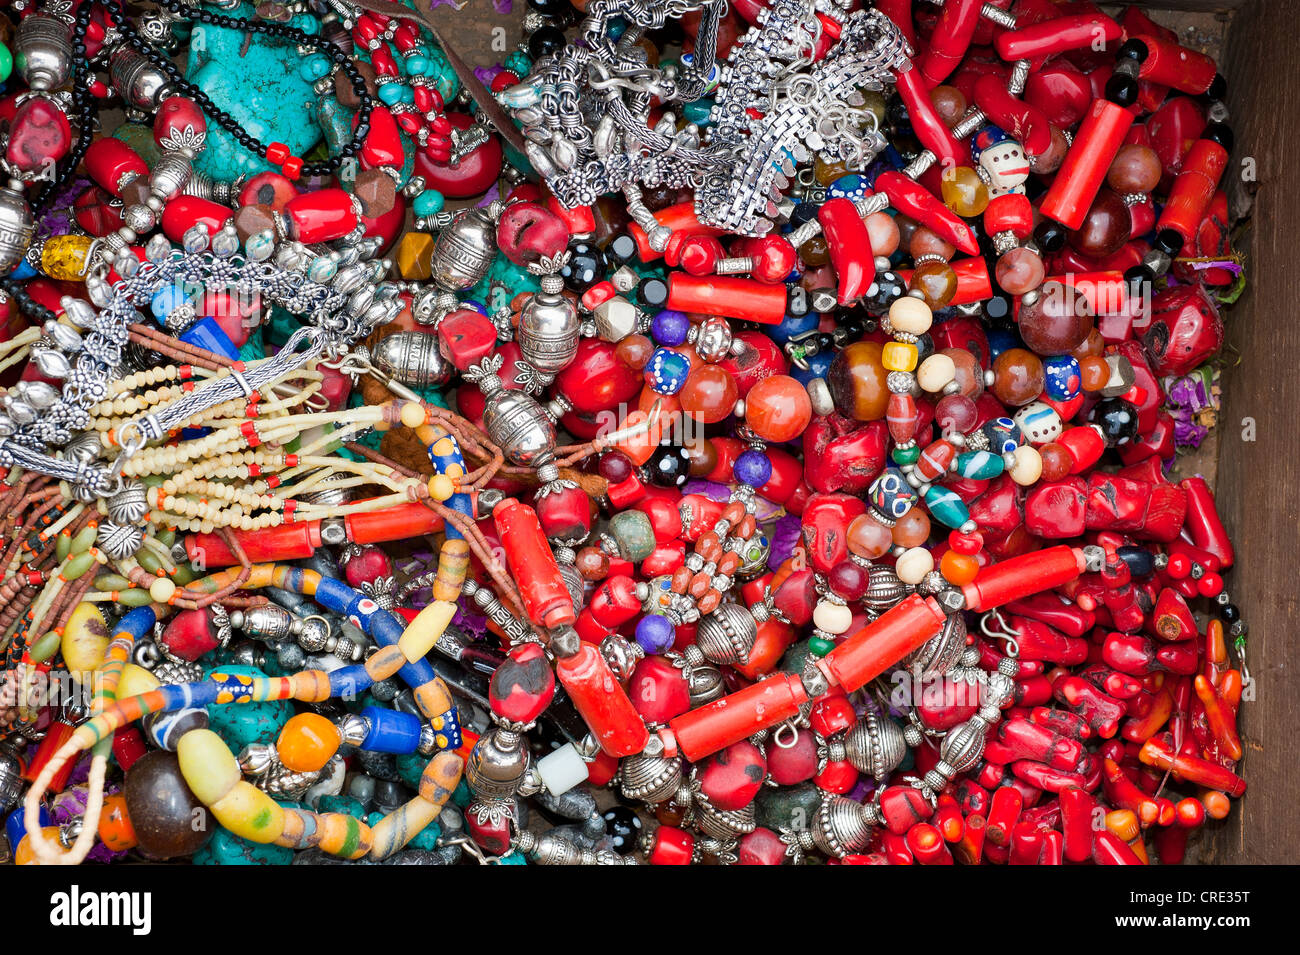 Oriental jewellery, necklaces with colourful beads and coral, souk, bazaar, Morocco, Africa - Stock Image